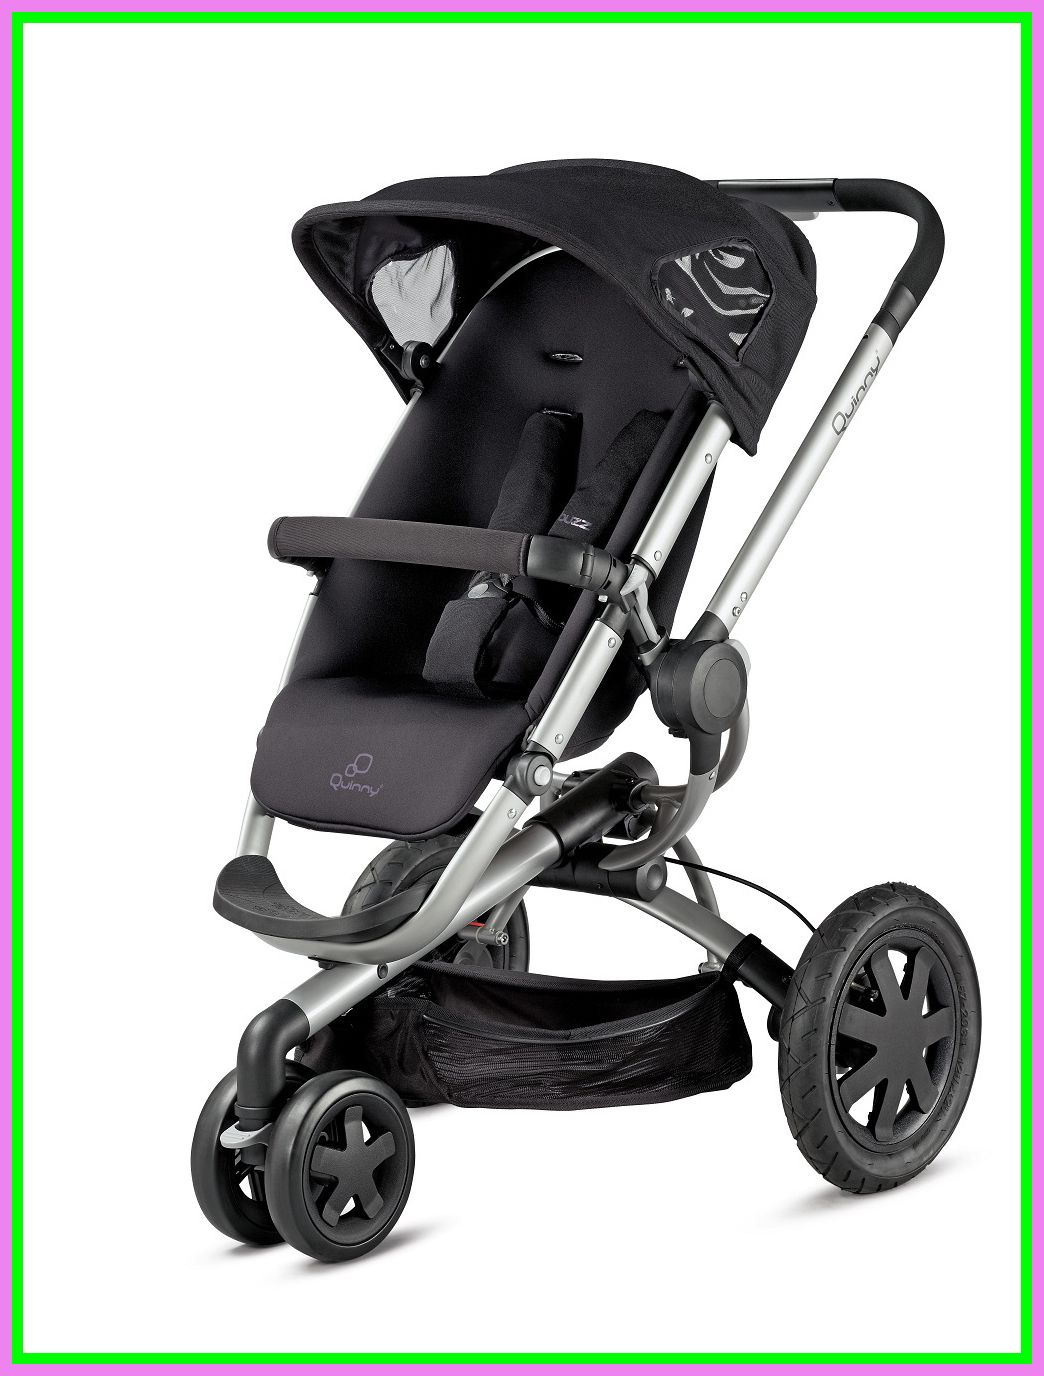 54 reference of stroller quinny zapp xtra 2.0 preloved in